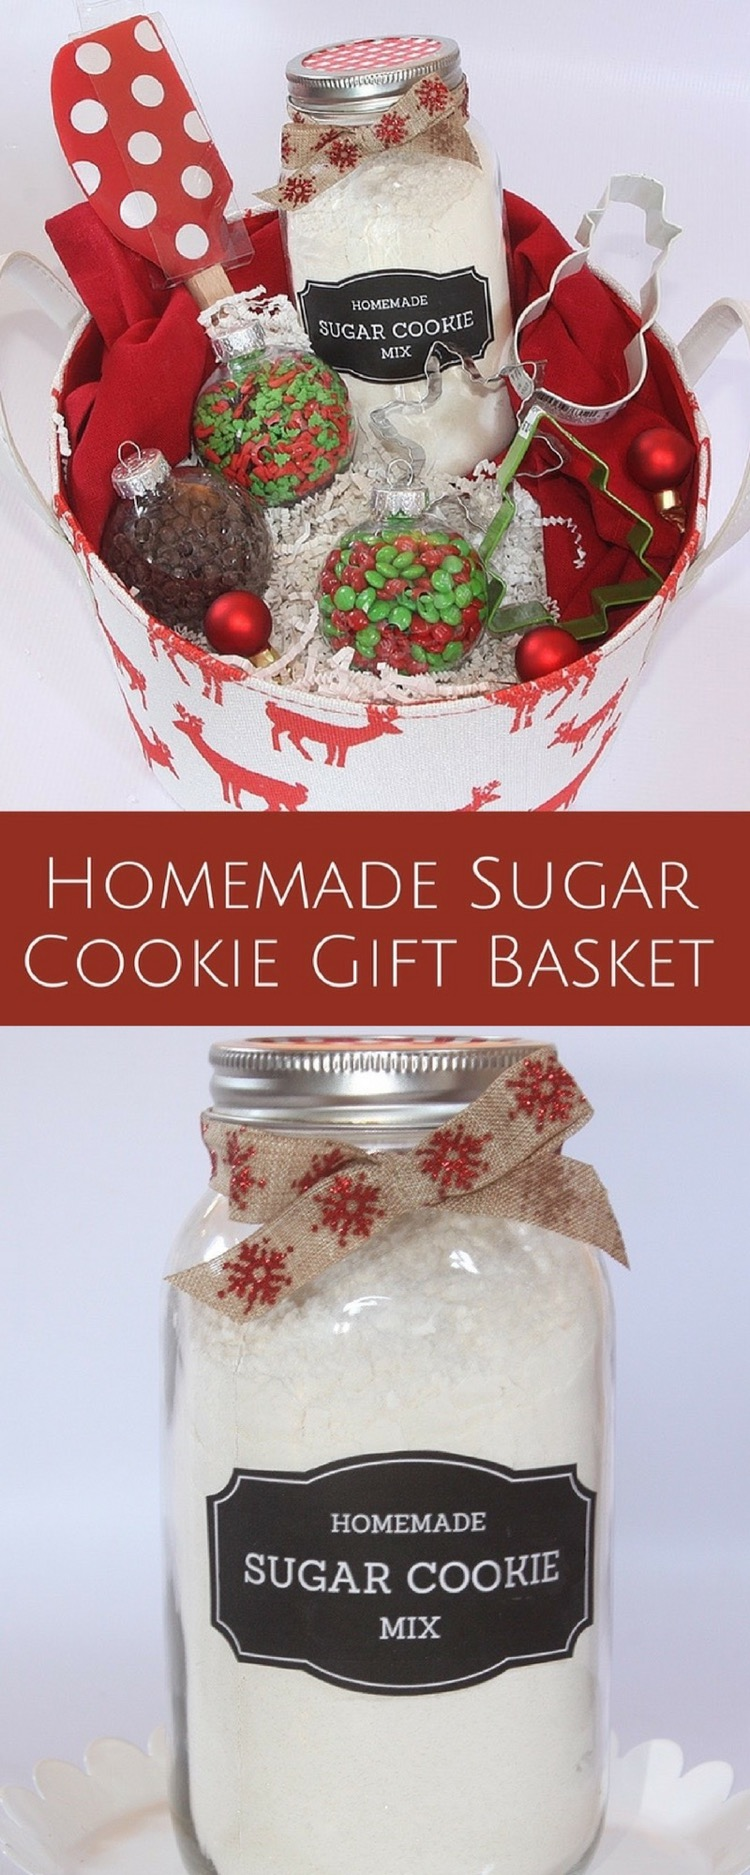 Homemade sugar cookie gift basket